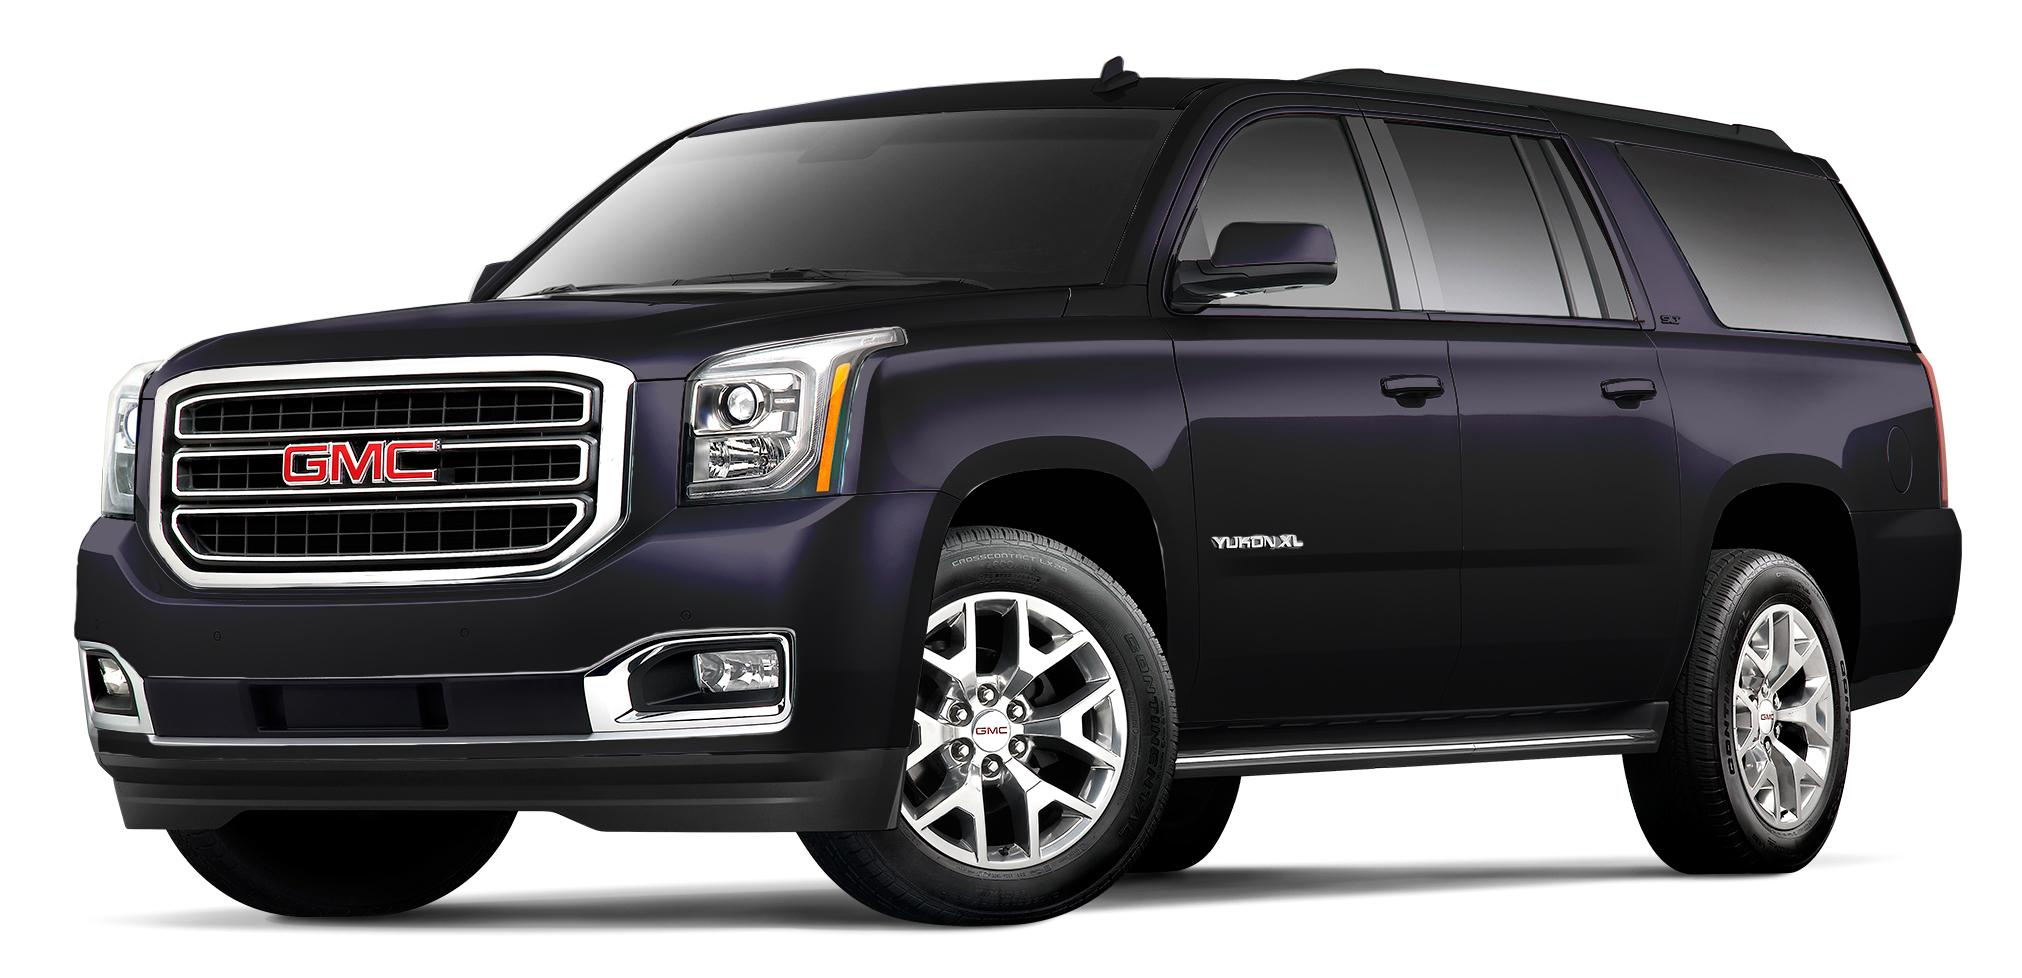 GMC Yukon XL Iridium